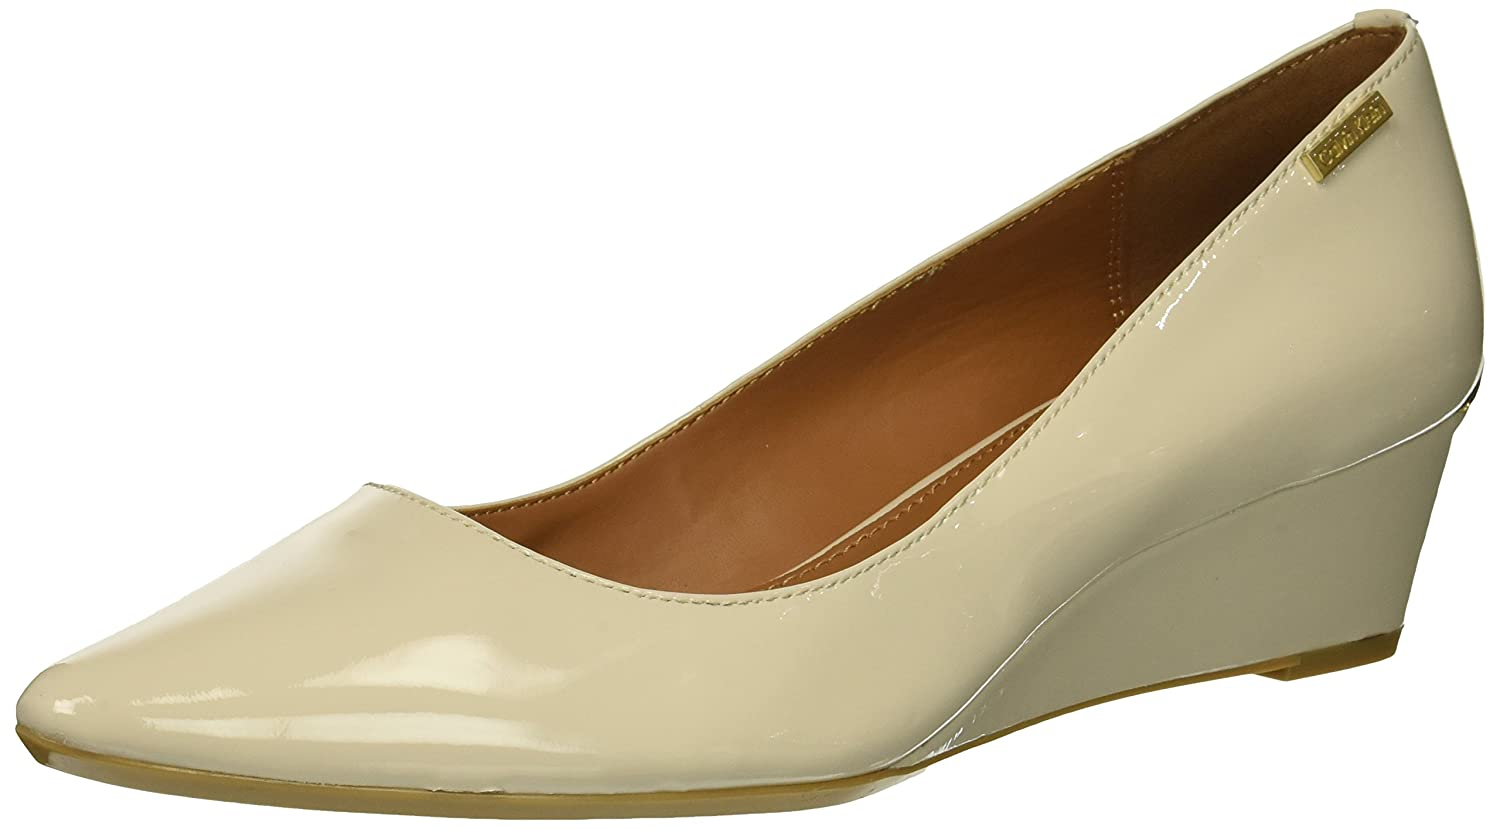 Calvin Klein Women's Germina Pump B07CKGQW4L 6.5 B(M) US|Soft White